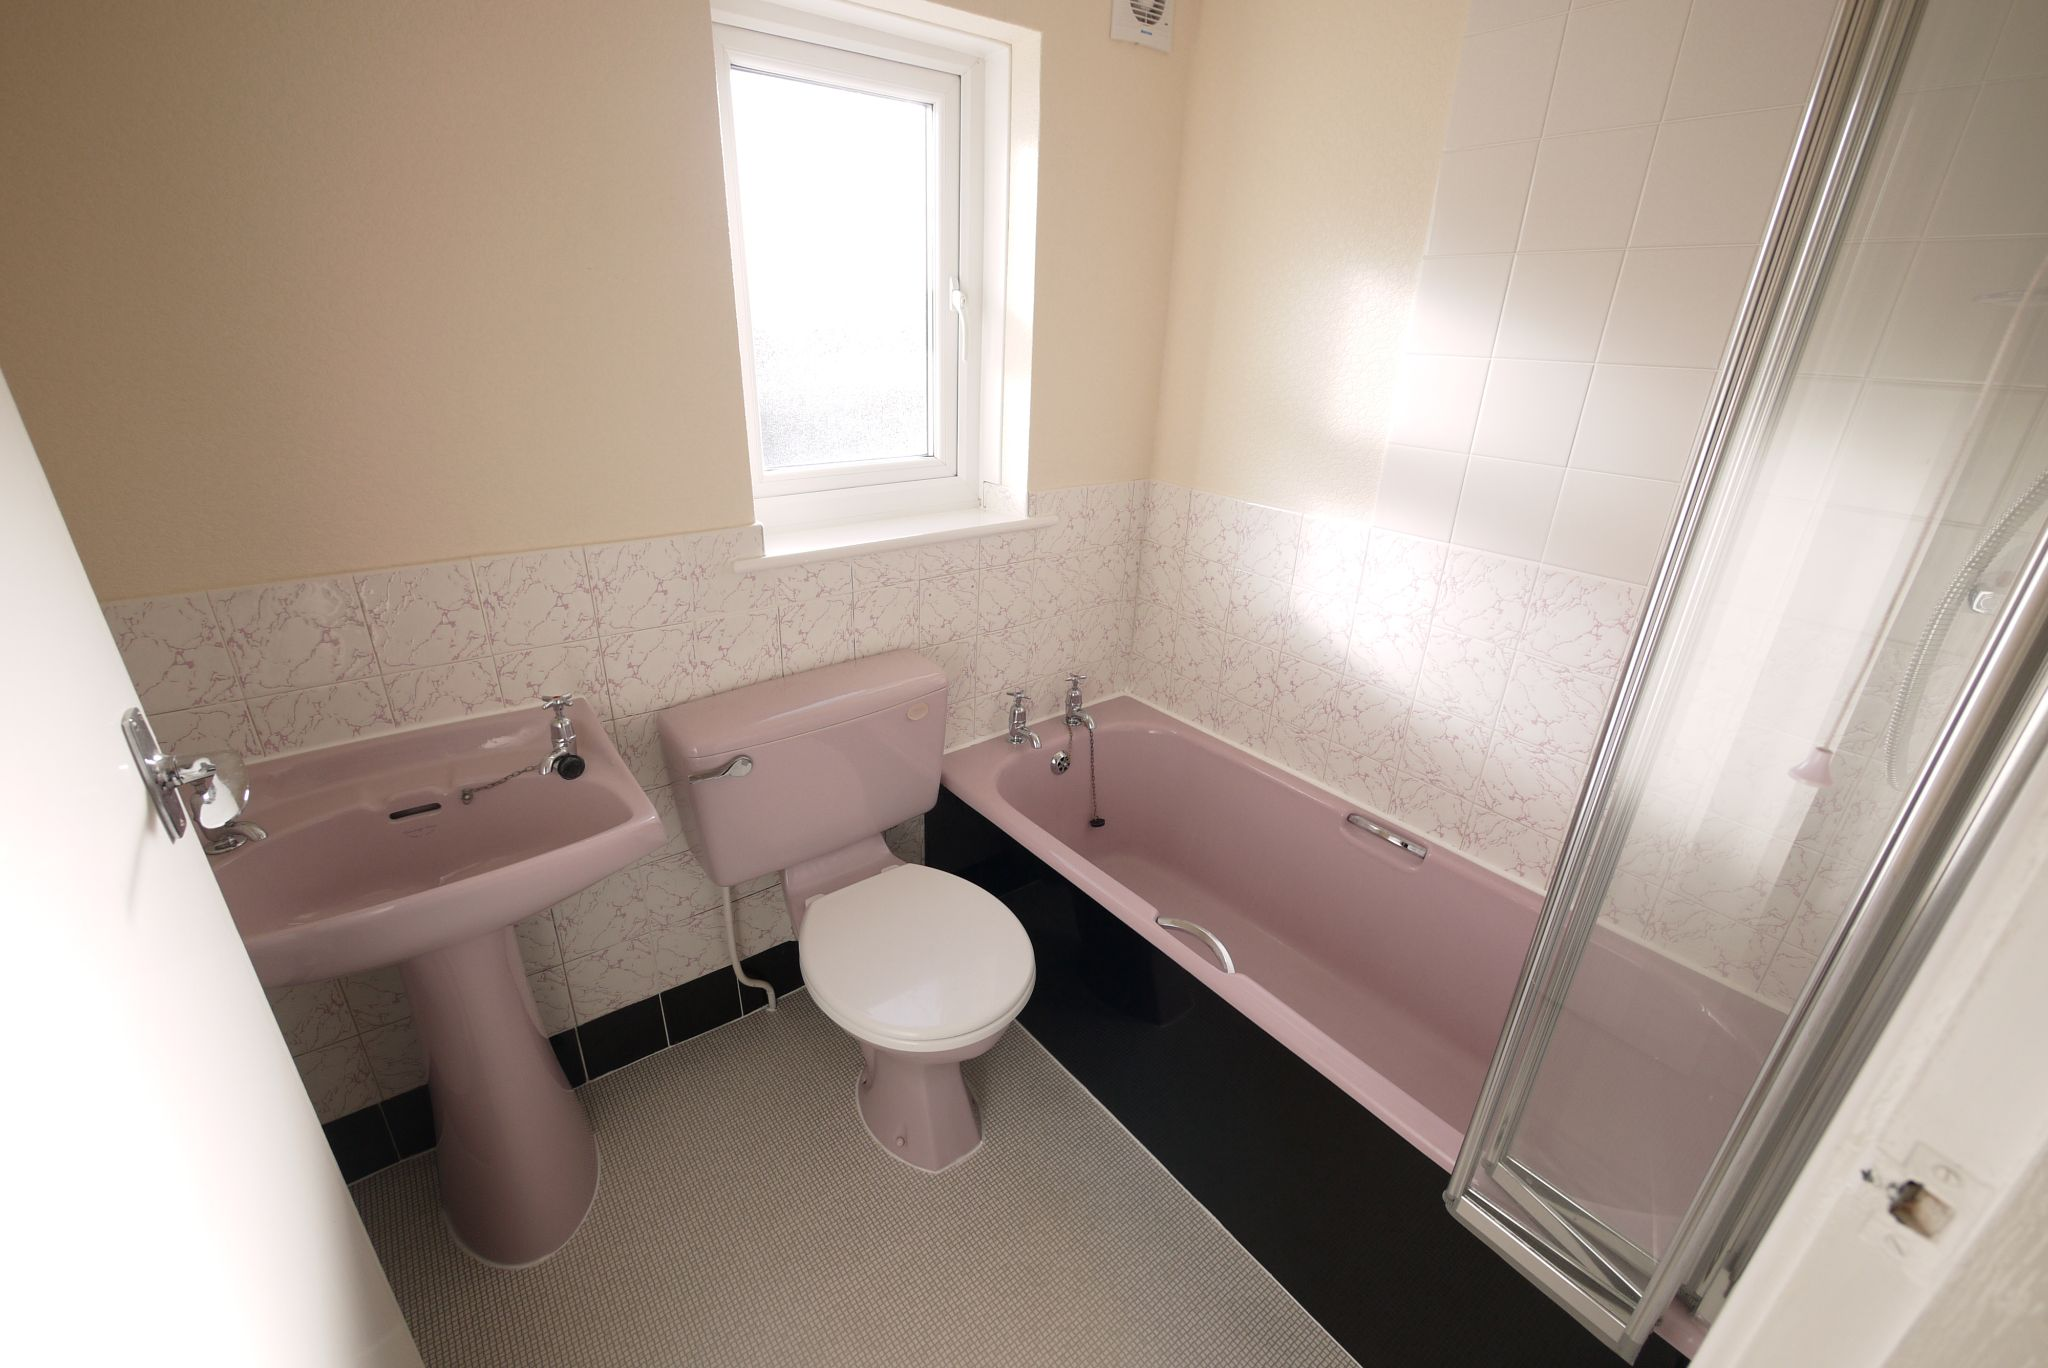 1 bedroom mid terraced house Let in Brighouse - Bathroom.